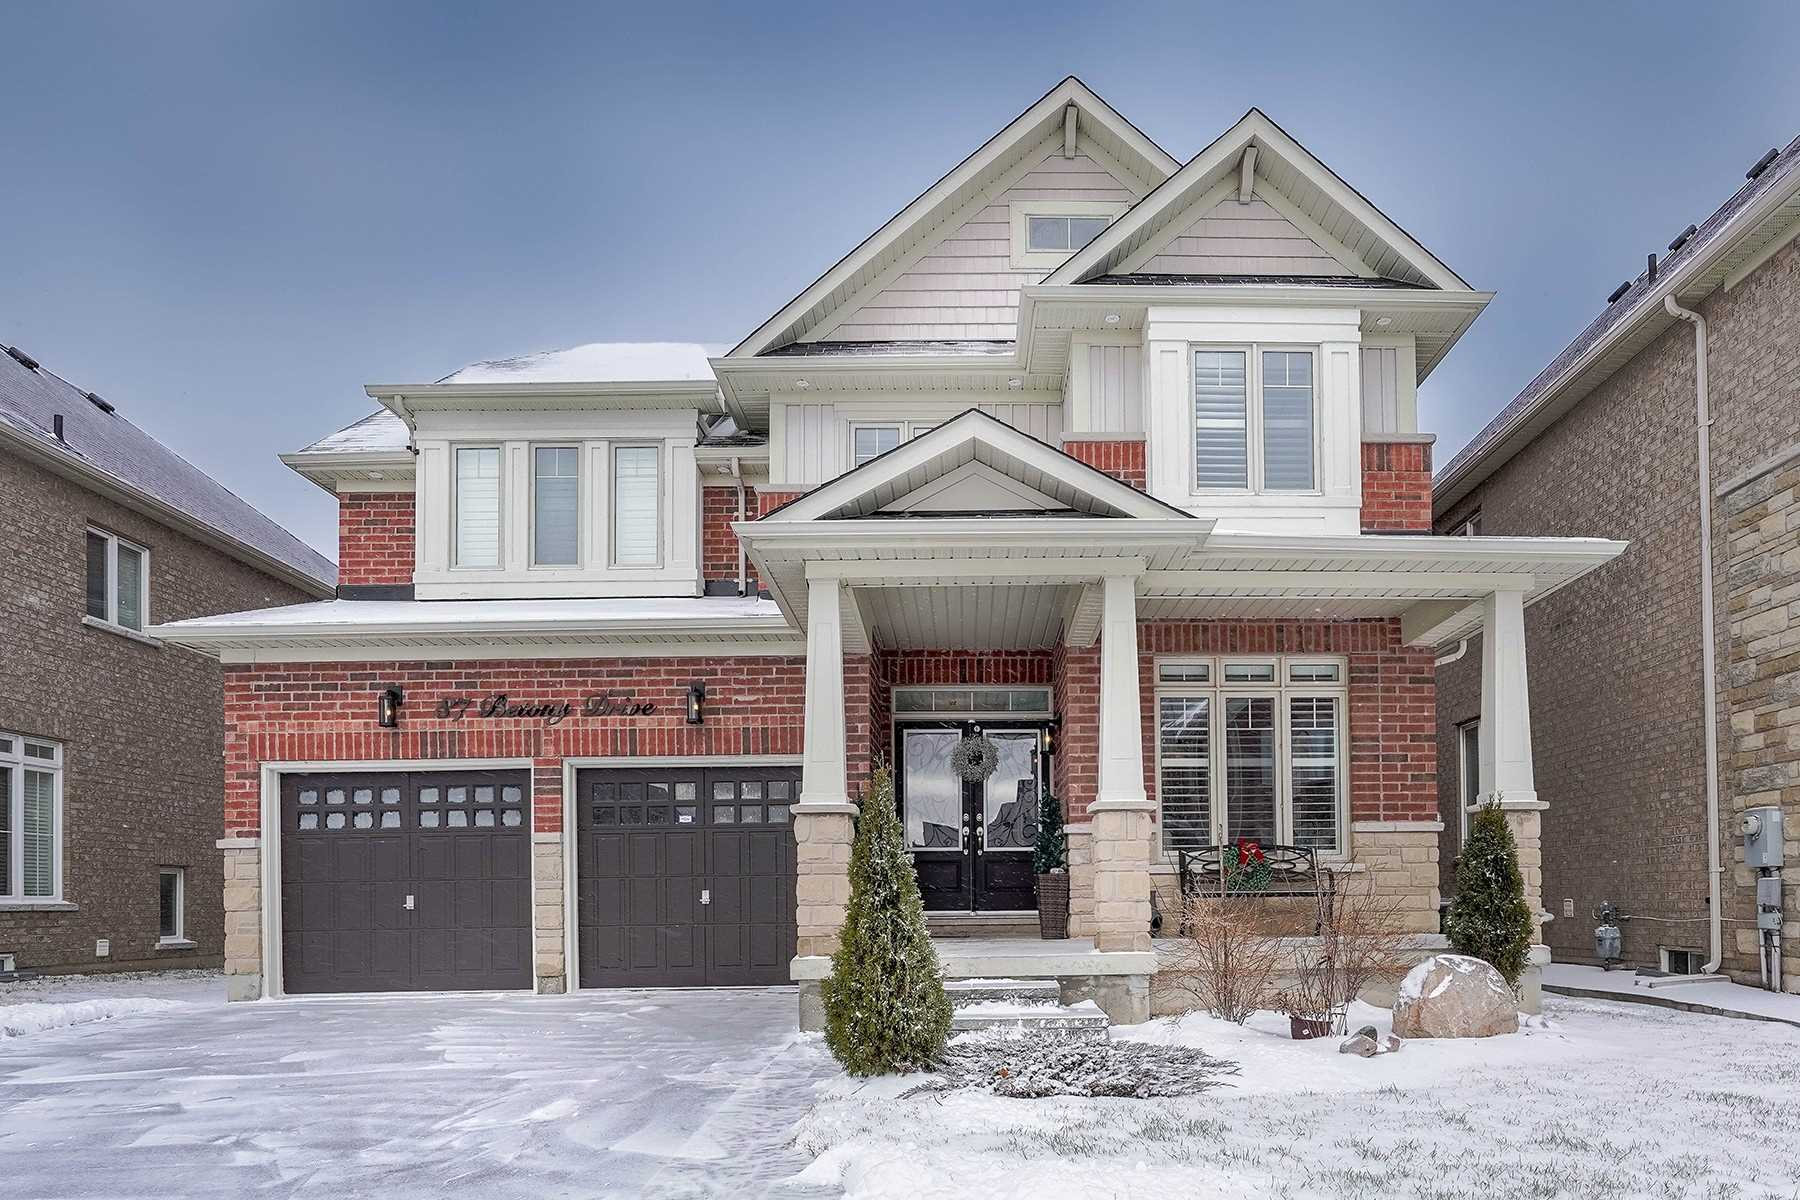 For Sale: 87 Betony Drive, Richmond Hill, ON | 4 Bed, 3 Bath House for $1347500.00. See 19 photos!